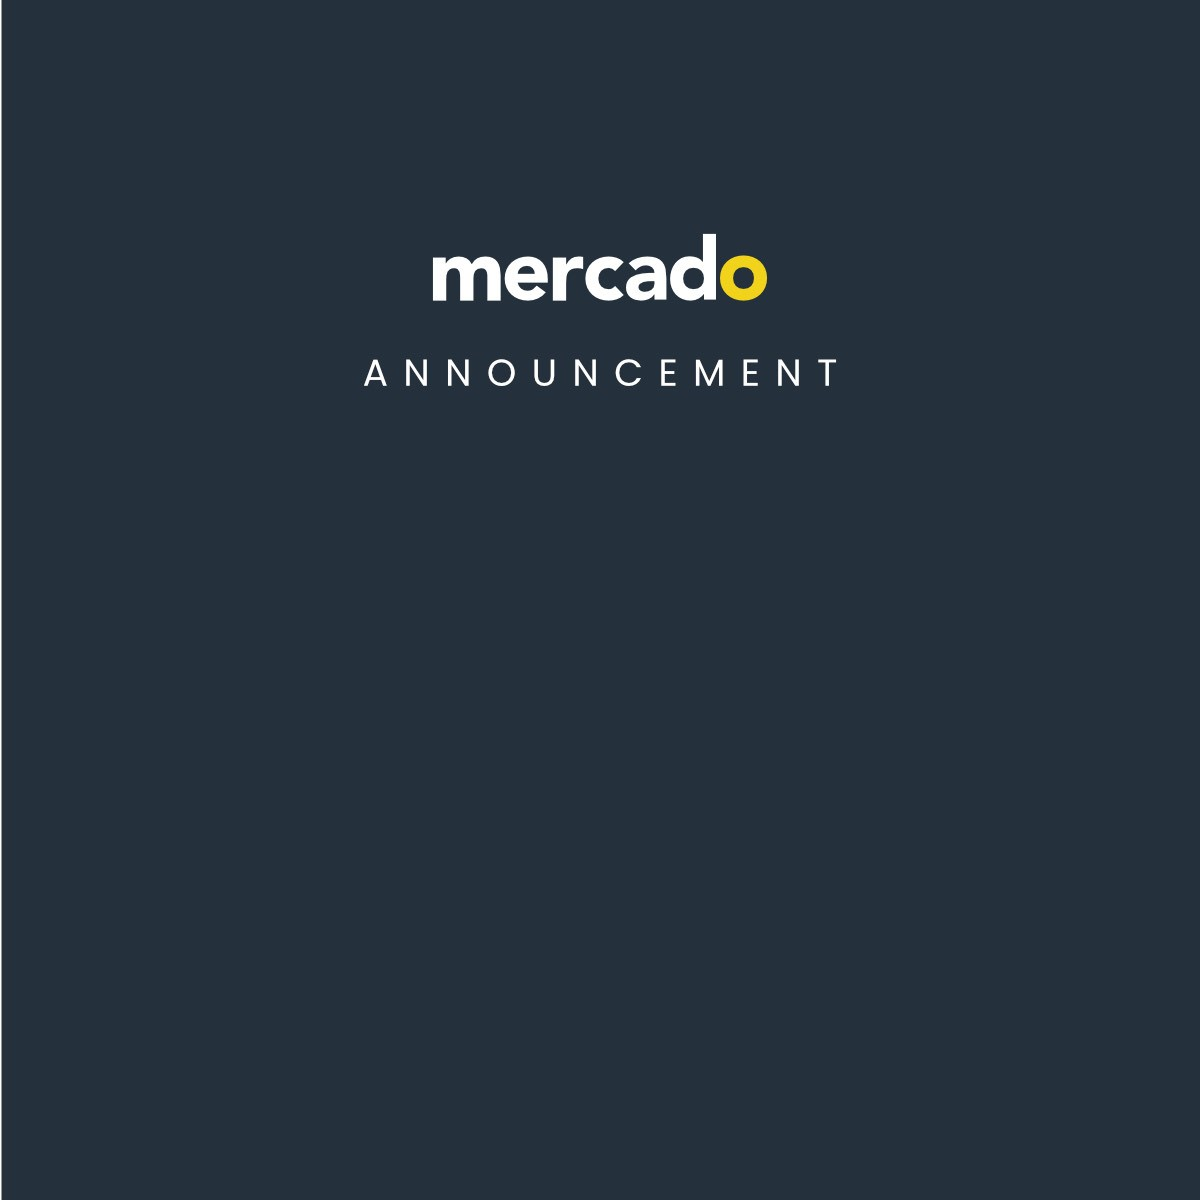 Mercado | Announcement - Mercado & Whitmor Partnership